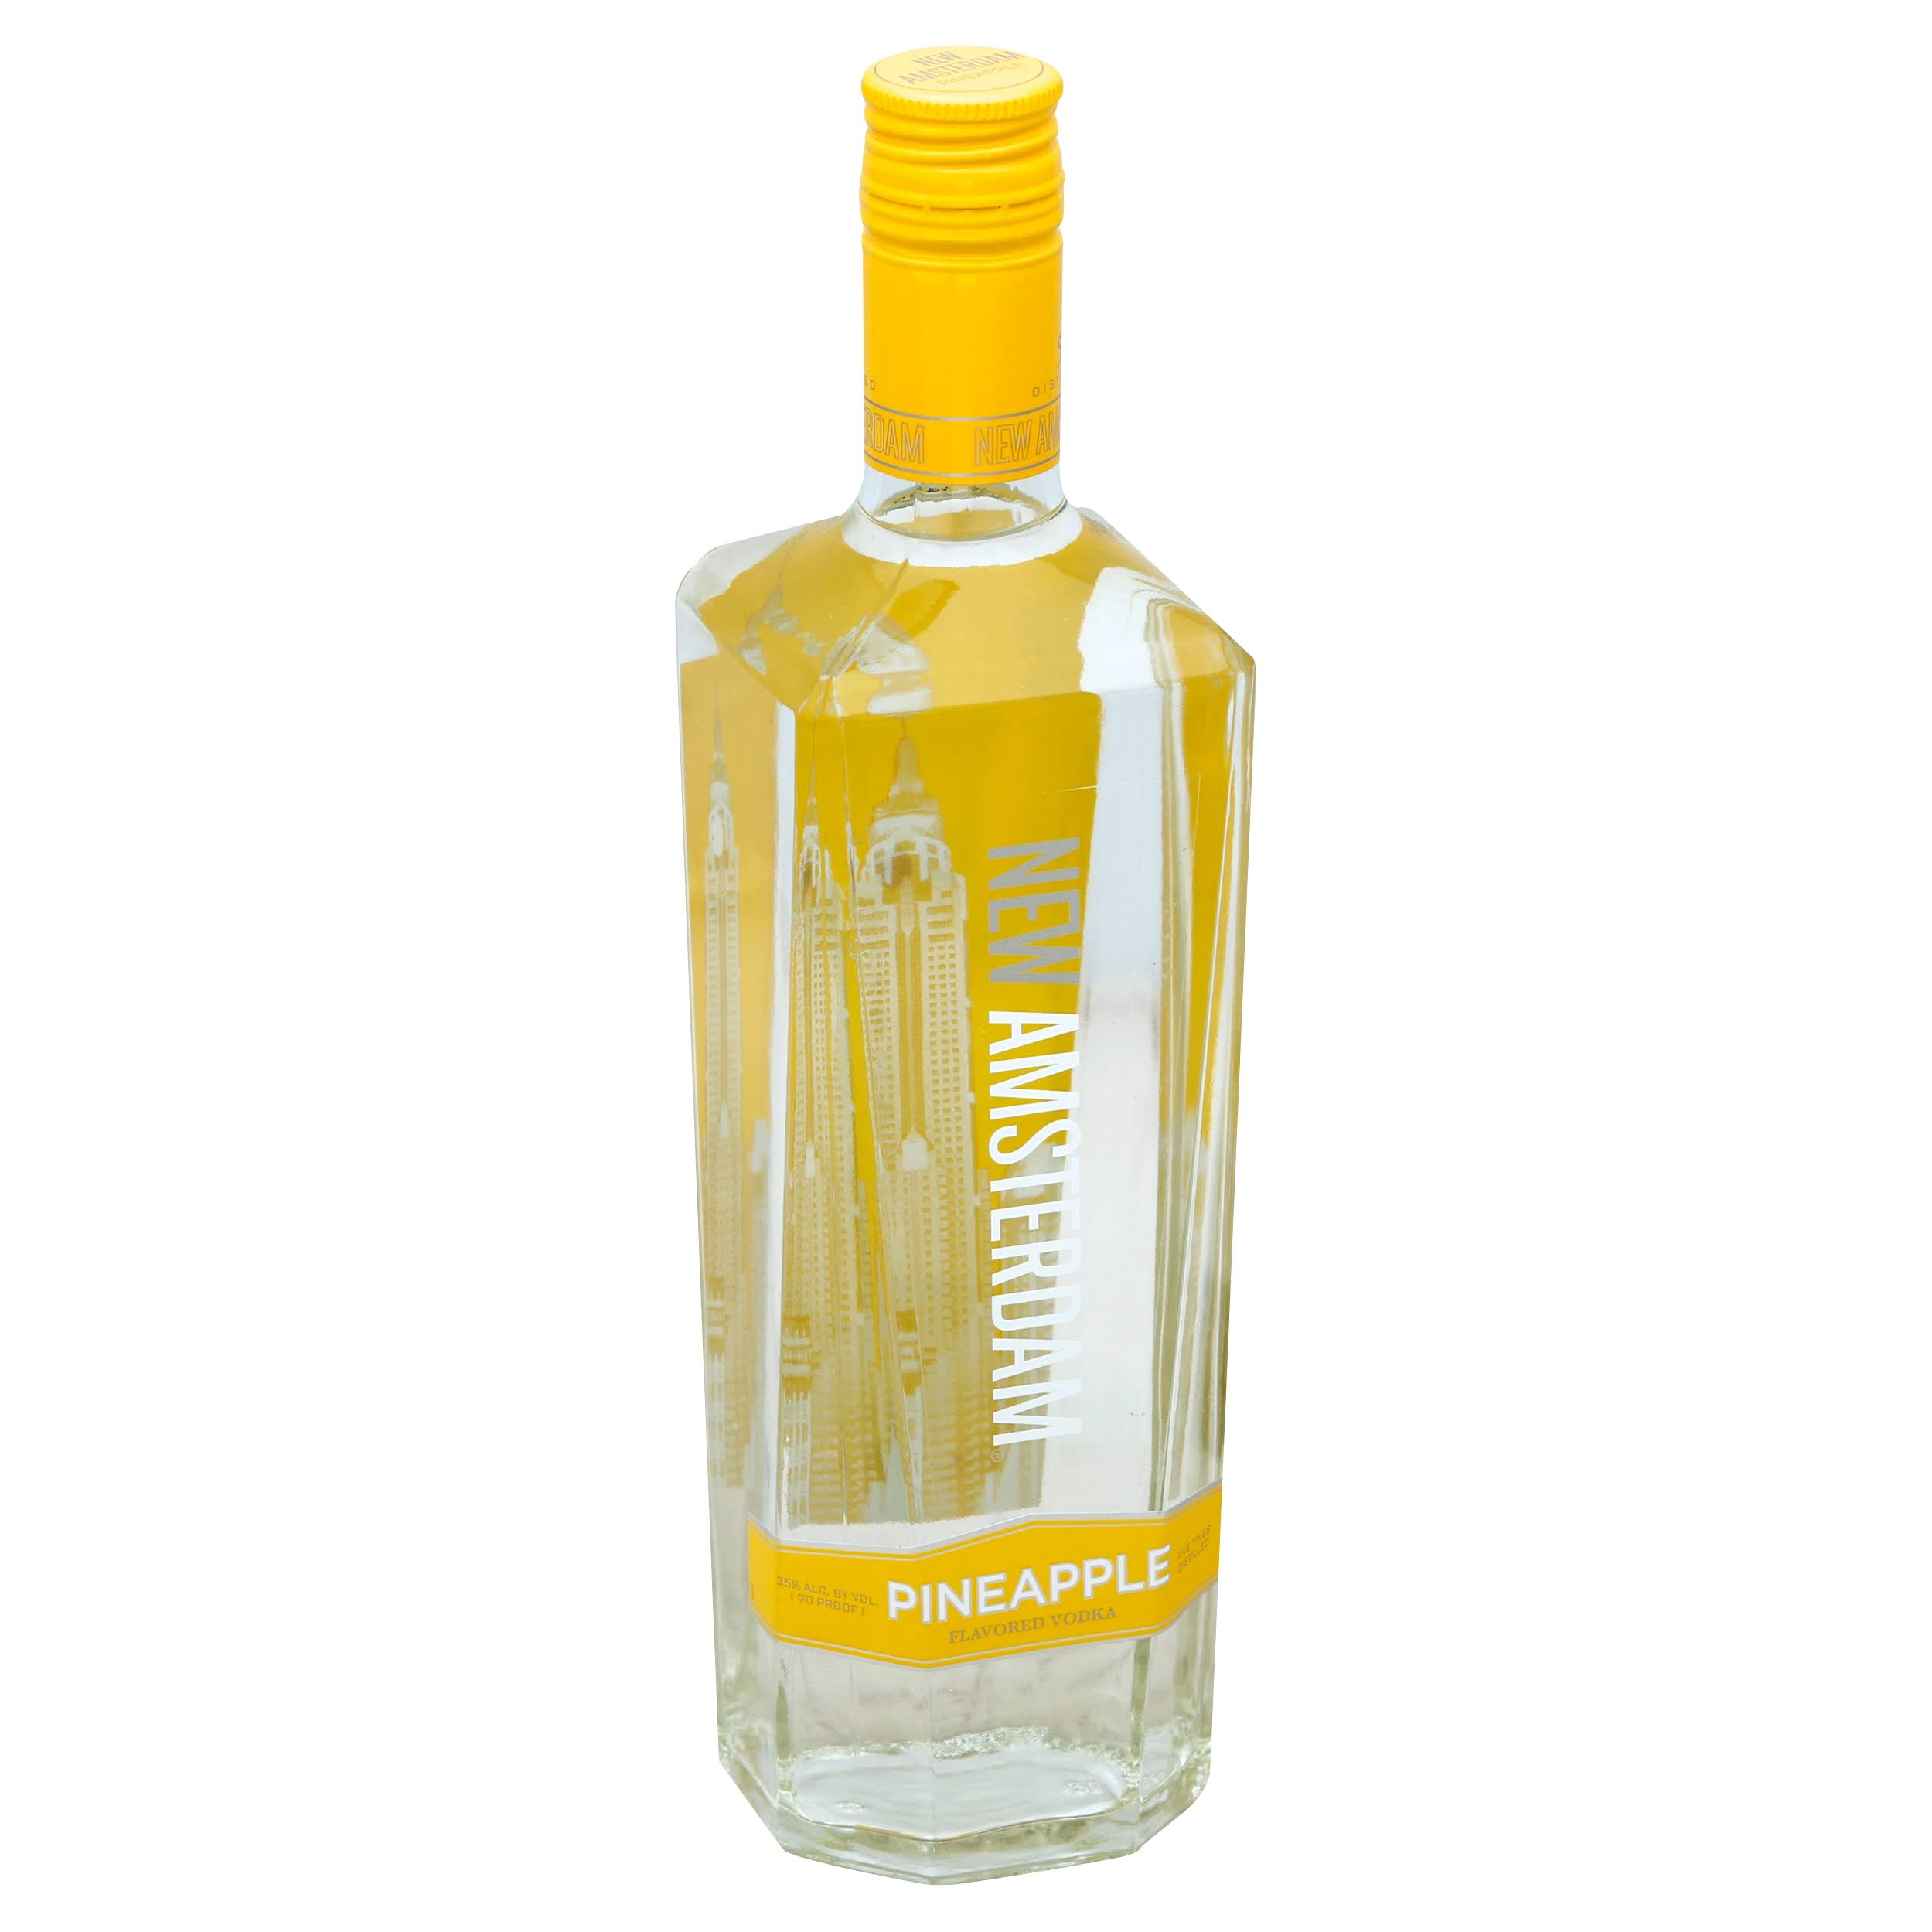 New Amsterdam Vodka, Pineapple Flavored - 750 ml